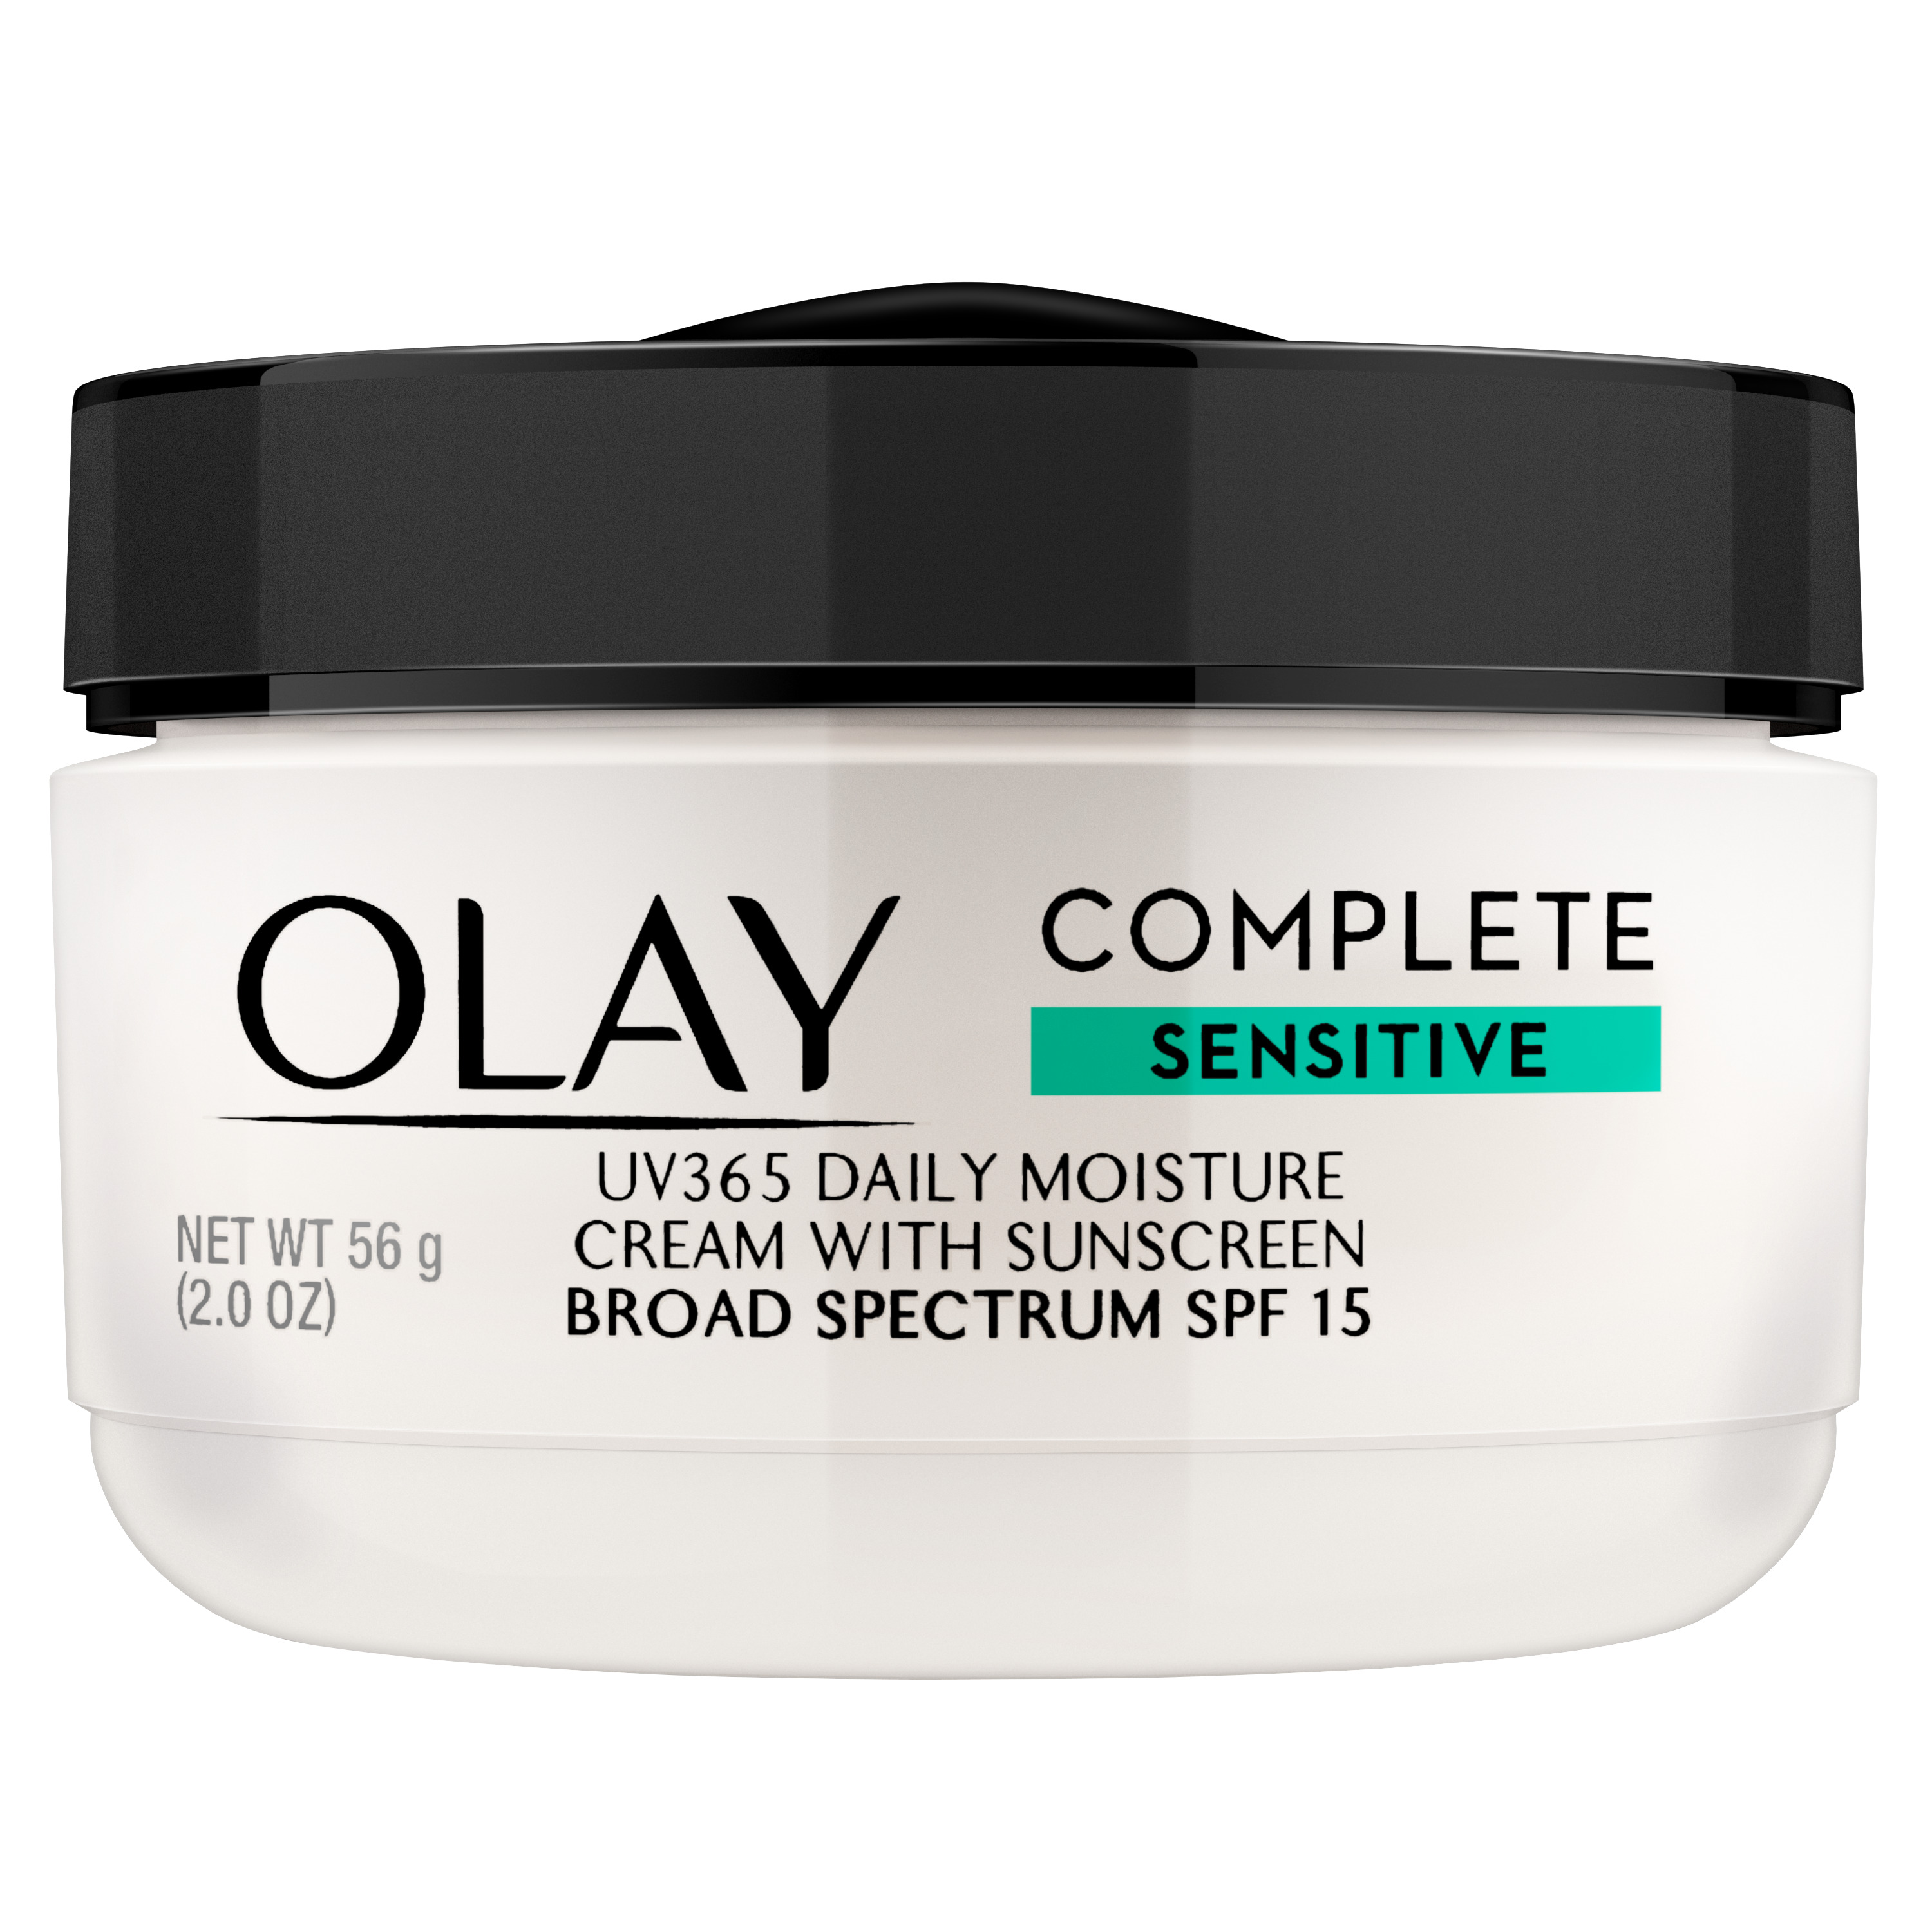 Olay Complete Face Cream Moisturizer with SPF 15 Sensitive Skin, 2.0 oz